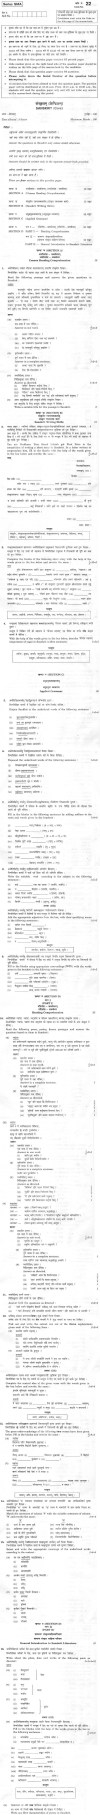 CBSE Class XII Previous Year Question Paper 2012: Sanskrit (Core) Image by AglaSem